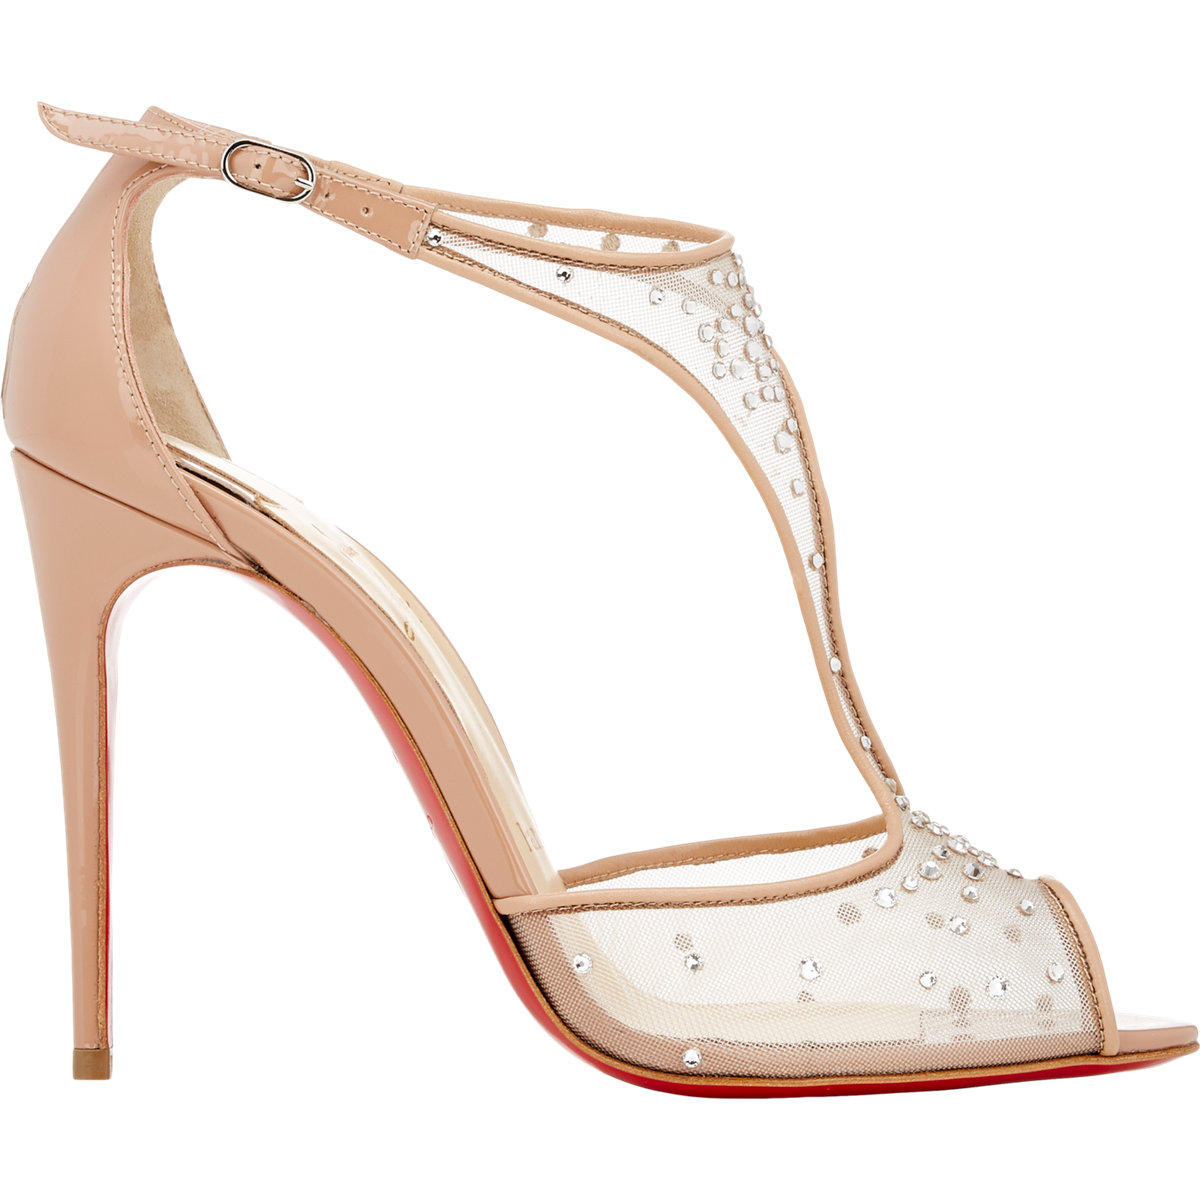 444175bf0b67 ... denmark lyst christian louboutin womens embellished patinana sandals in  fc53c 47b25